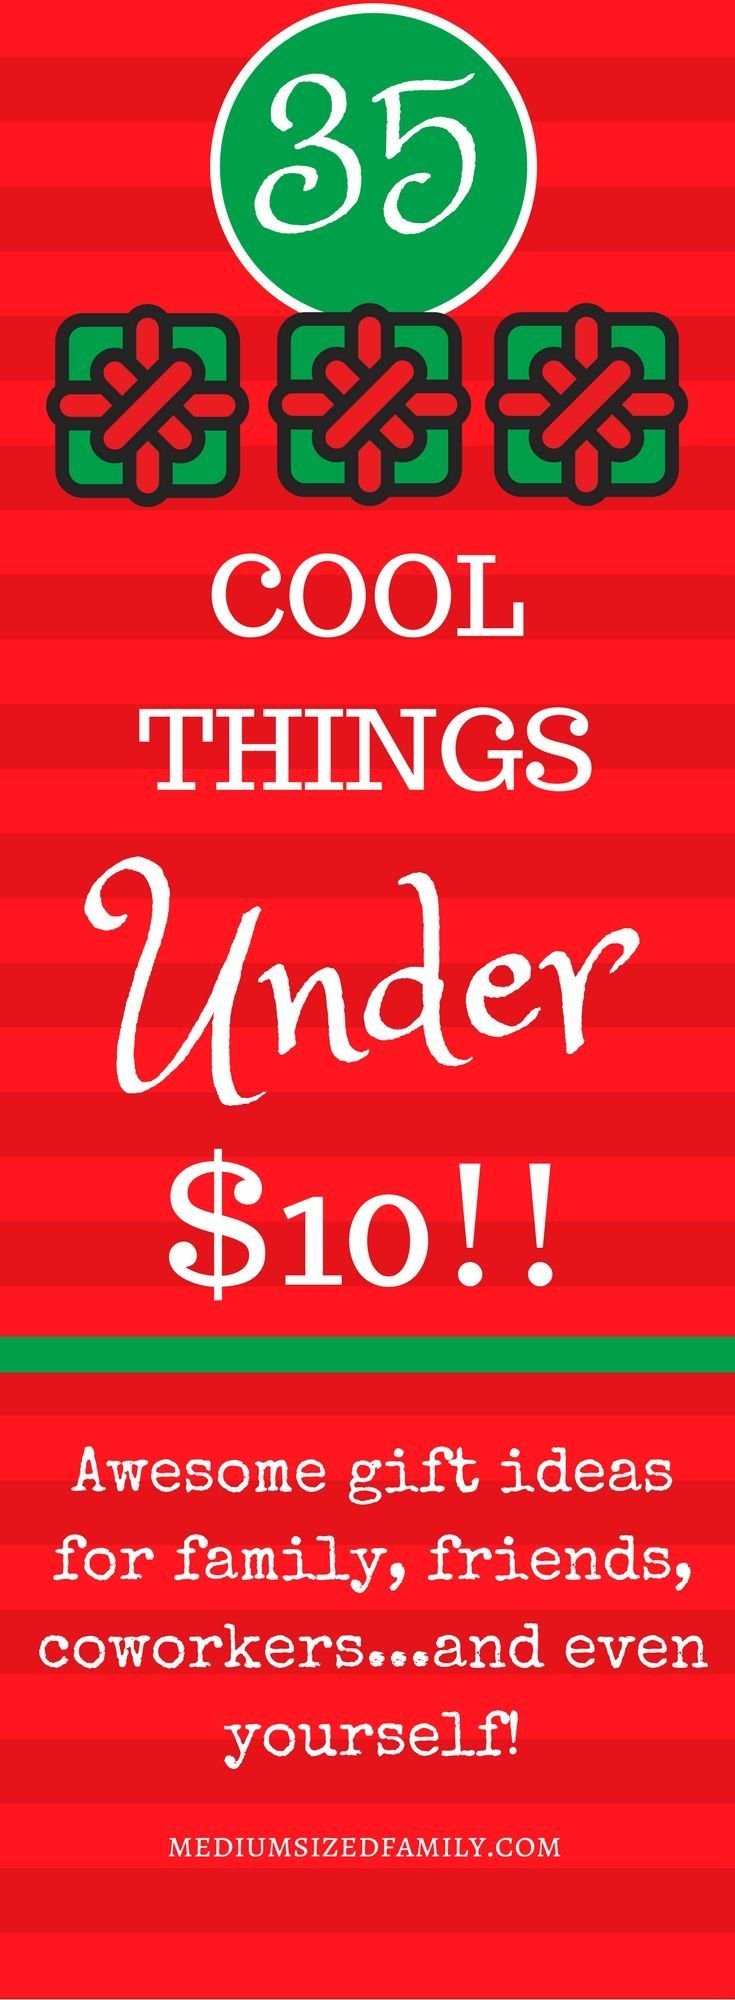 35 cool things under 10 dollars that youll both love